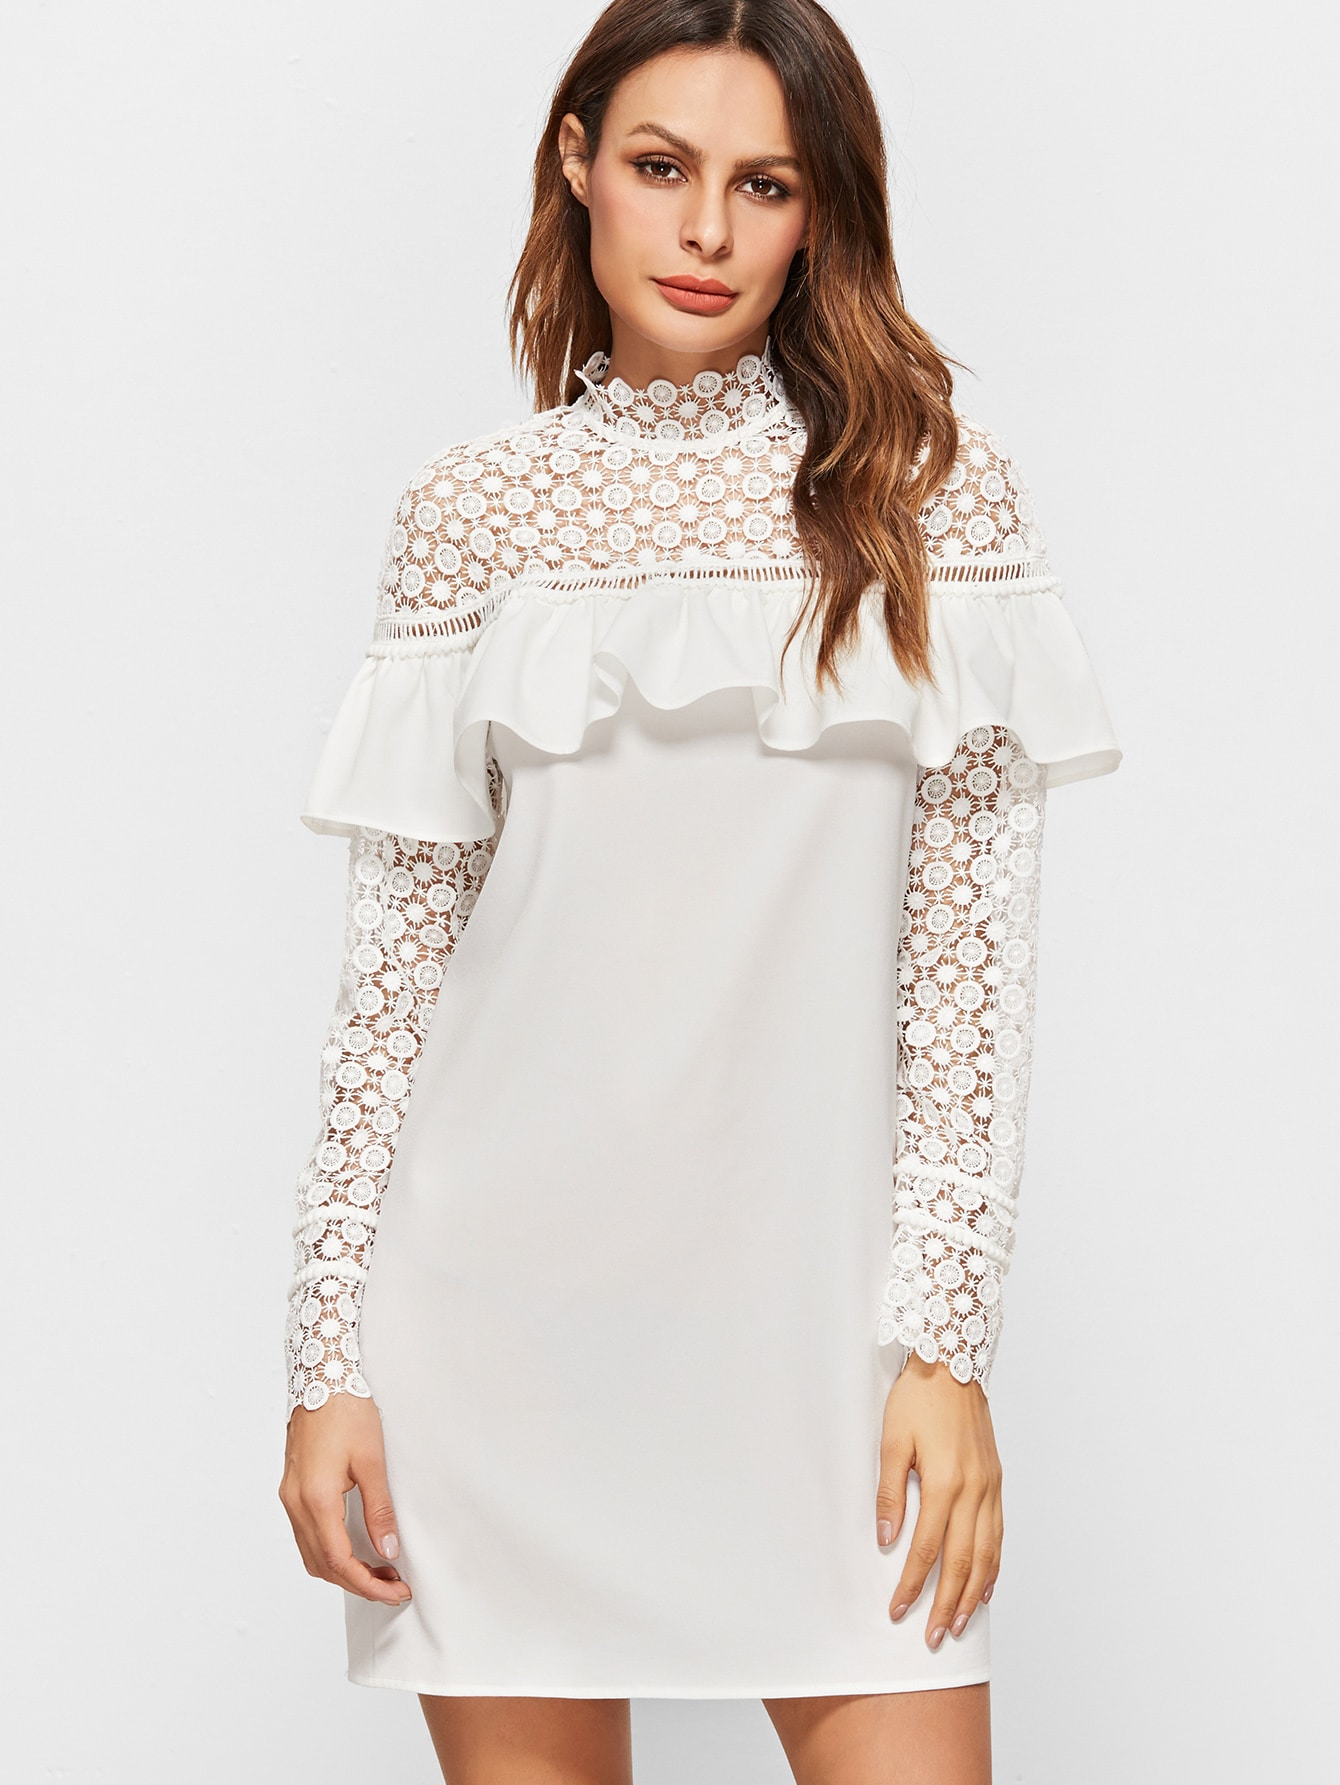 090524a2c15b1 White Sheer Embroidered Lace Shoulder And Sleeve Ruffle Dress ...